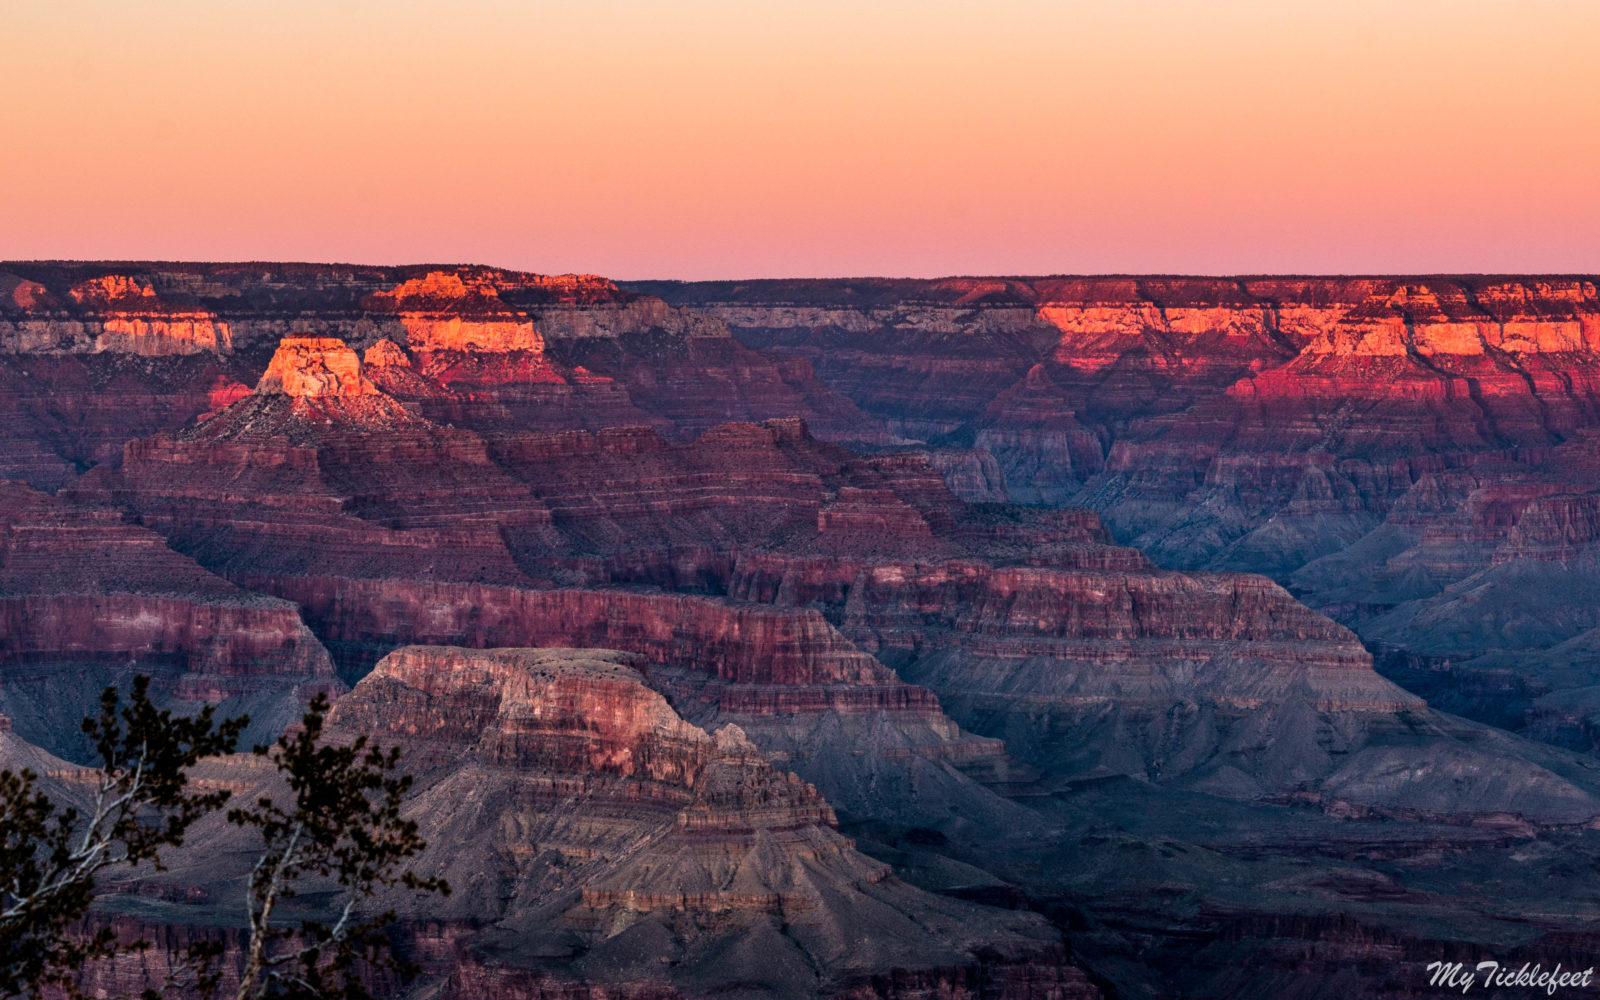 Sunset at Grand Canyon